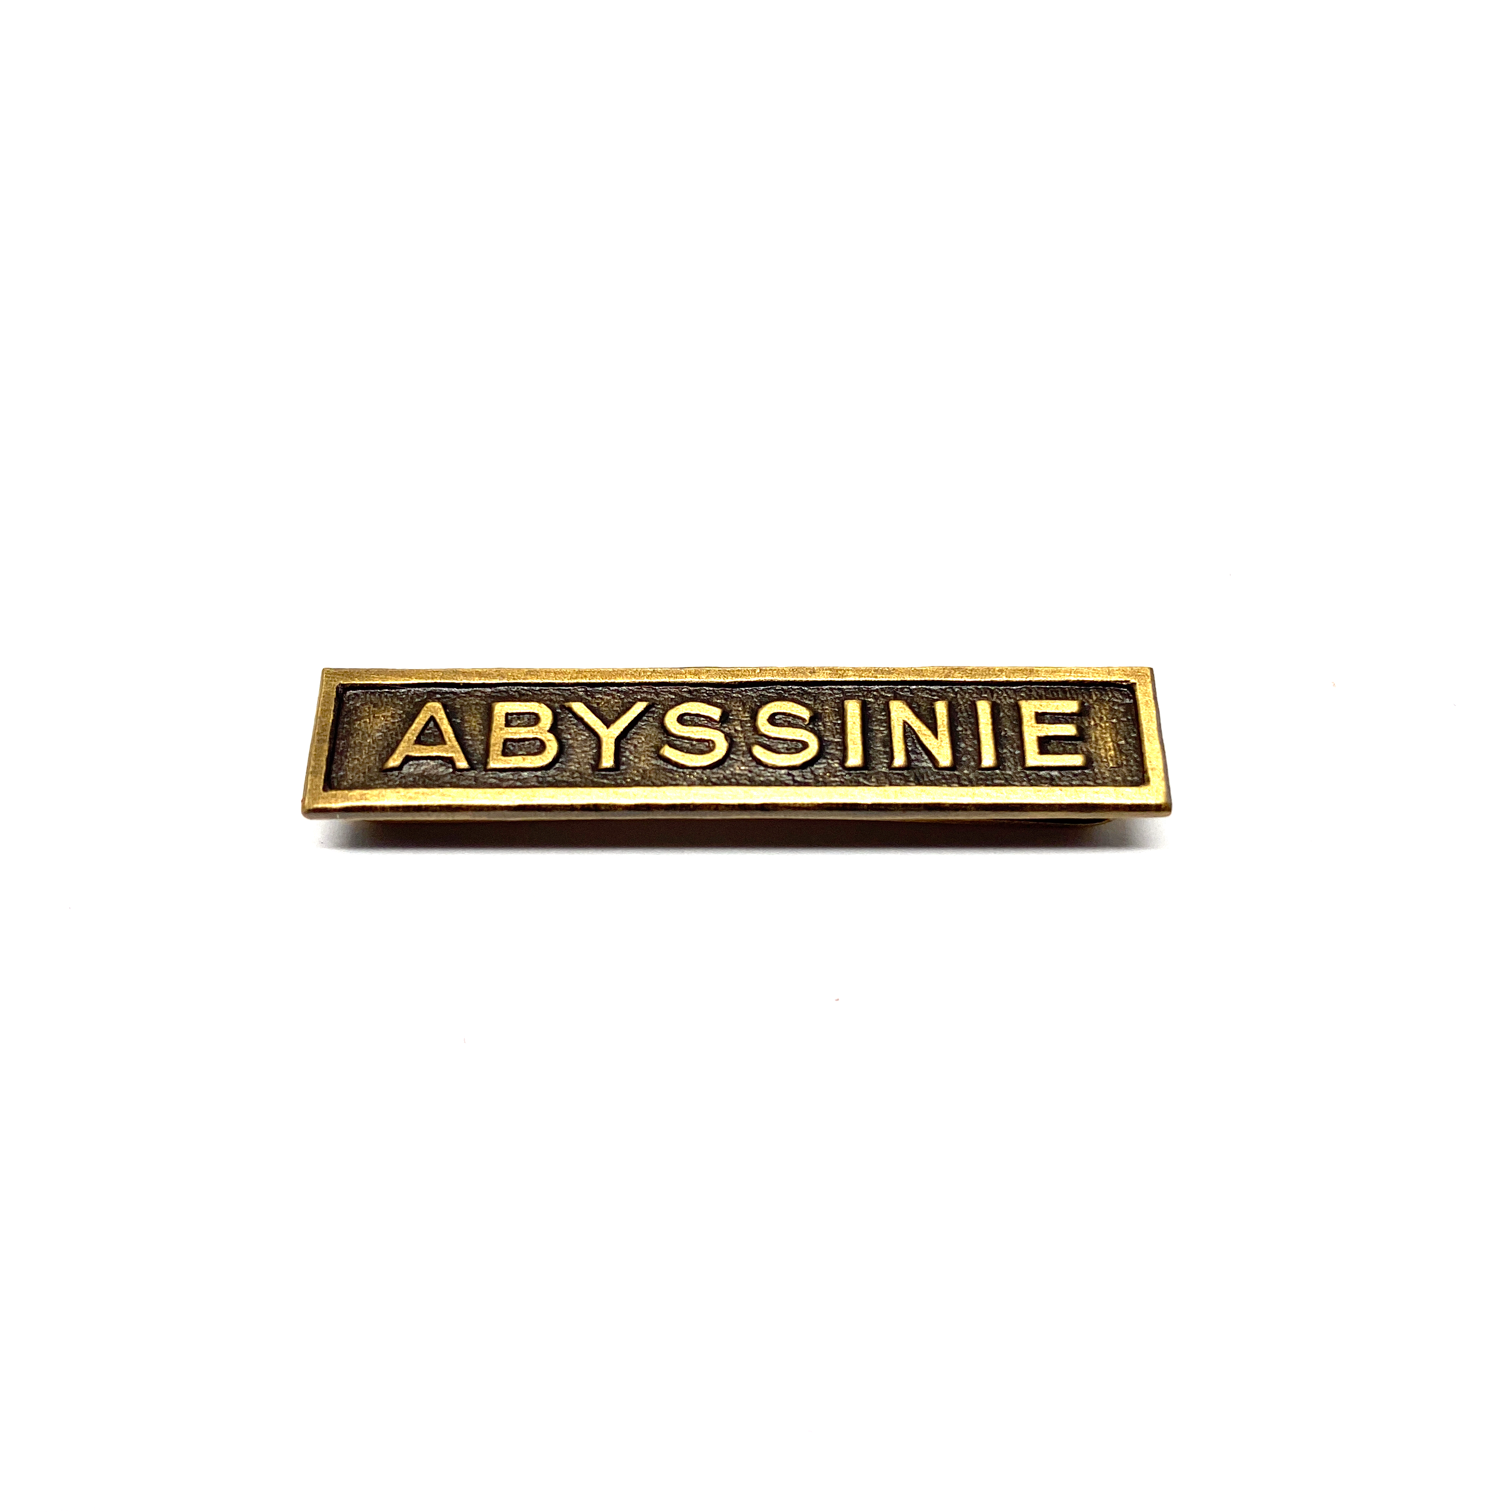 Bar Abyssinie for war medals